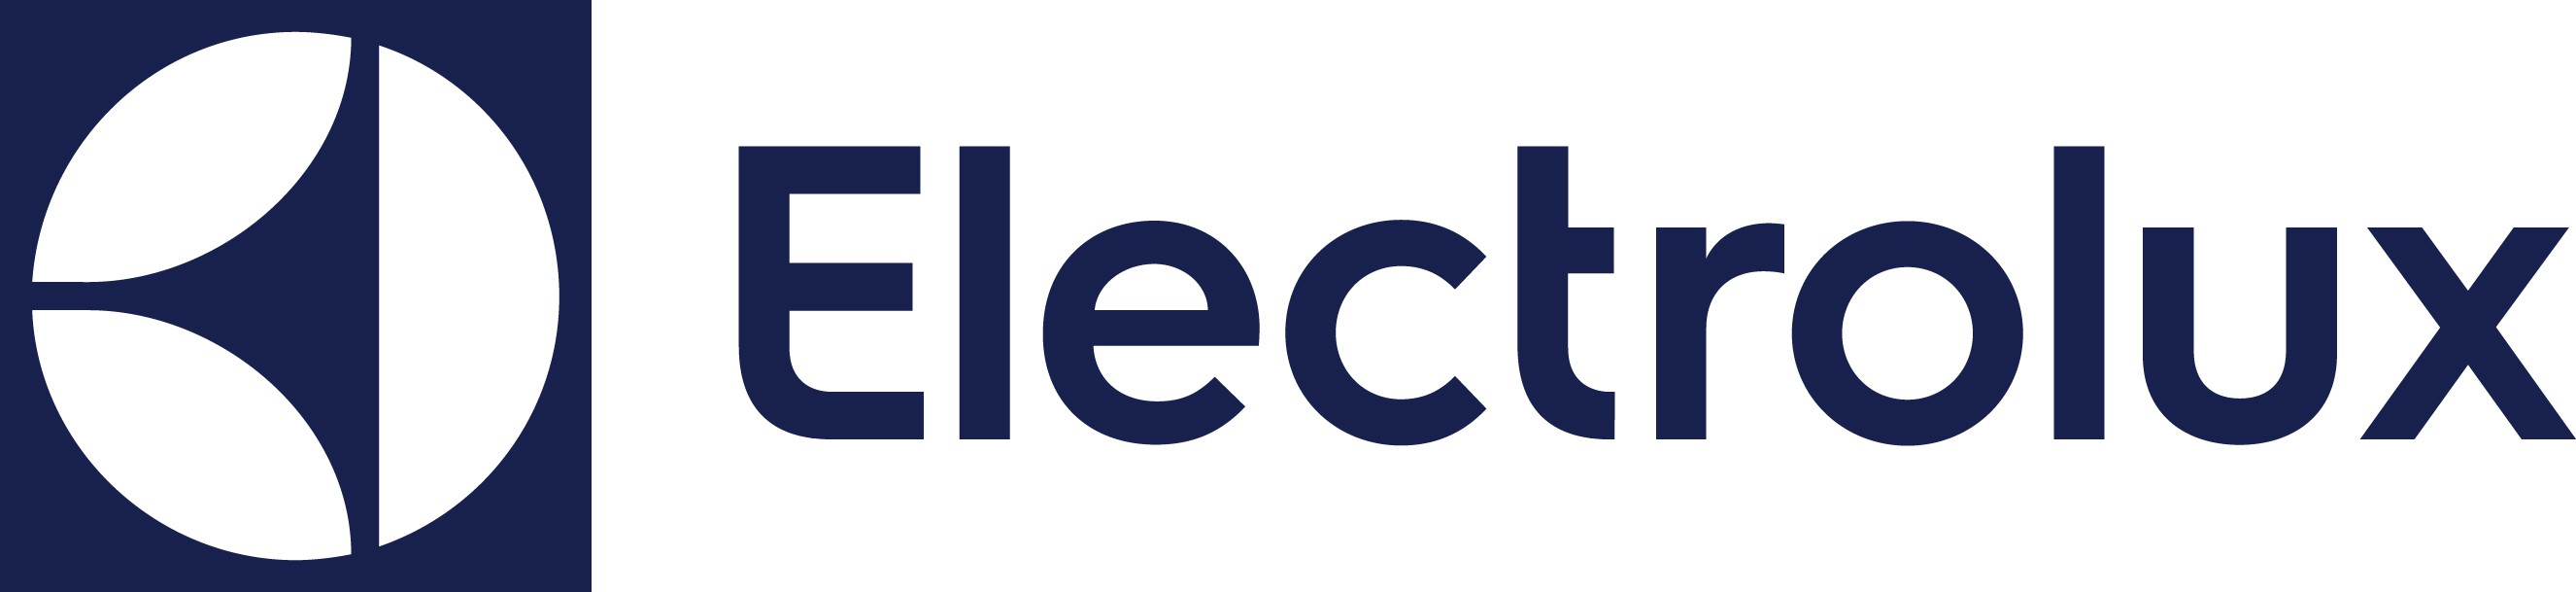 electrolux Find, shop for, and buy electrolux appliances online for the lowest prices at us appliance electrolux appliances offer a wide variety of appliances from dishwashers, refrigerators, washers and dryers, cooktops, ranges and microwaves.